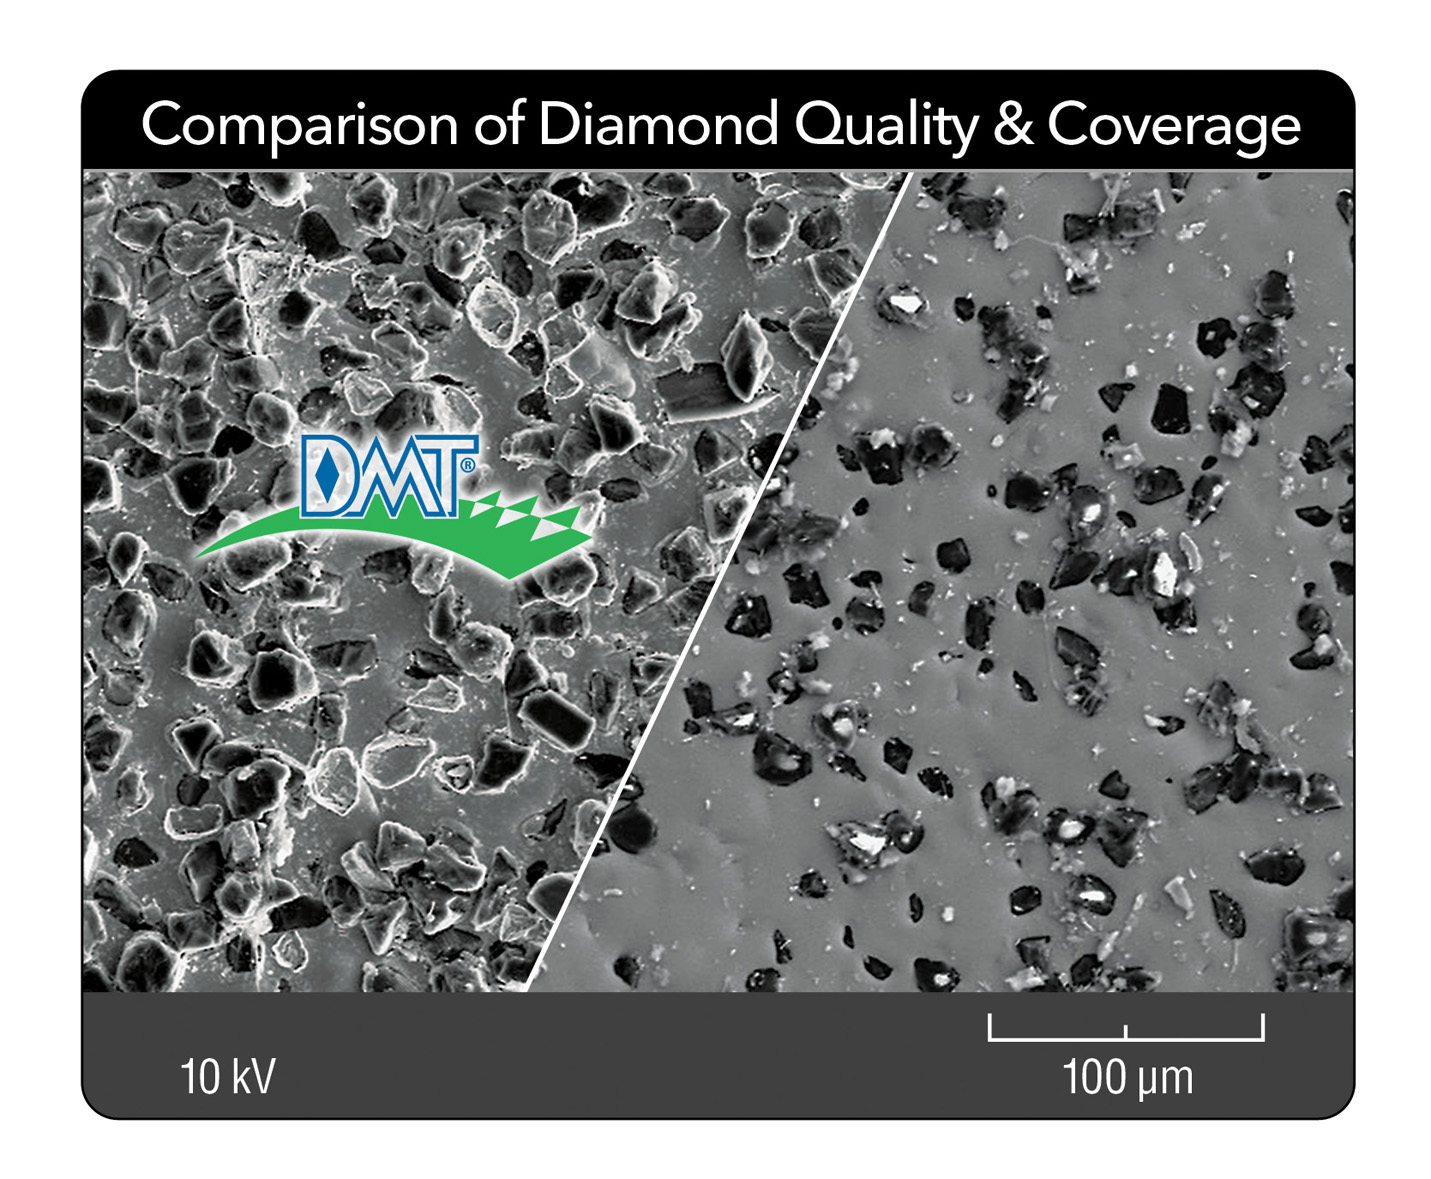 Diamond coverage DMT